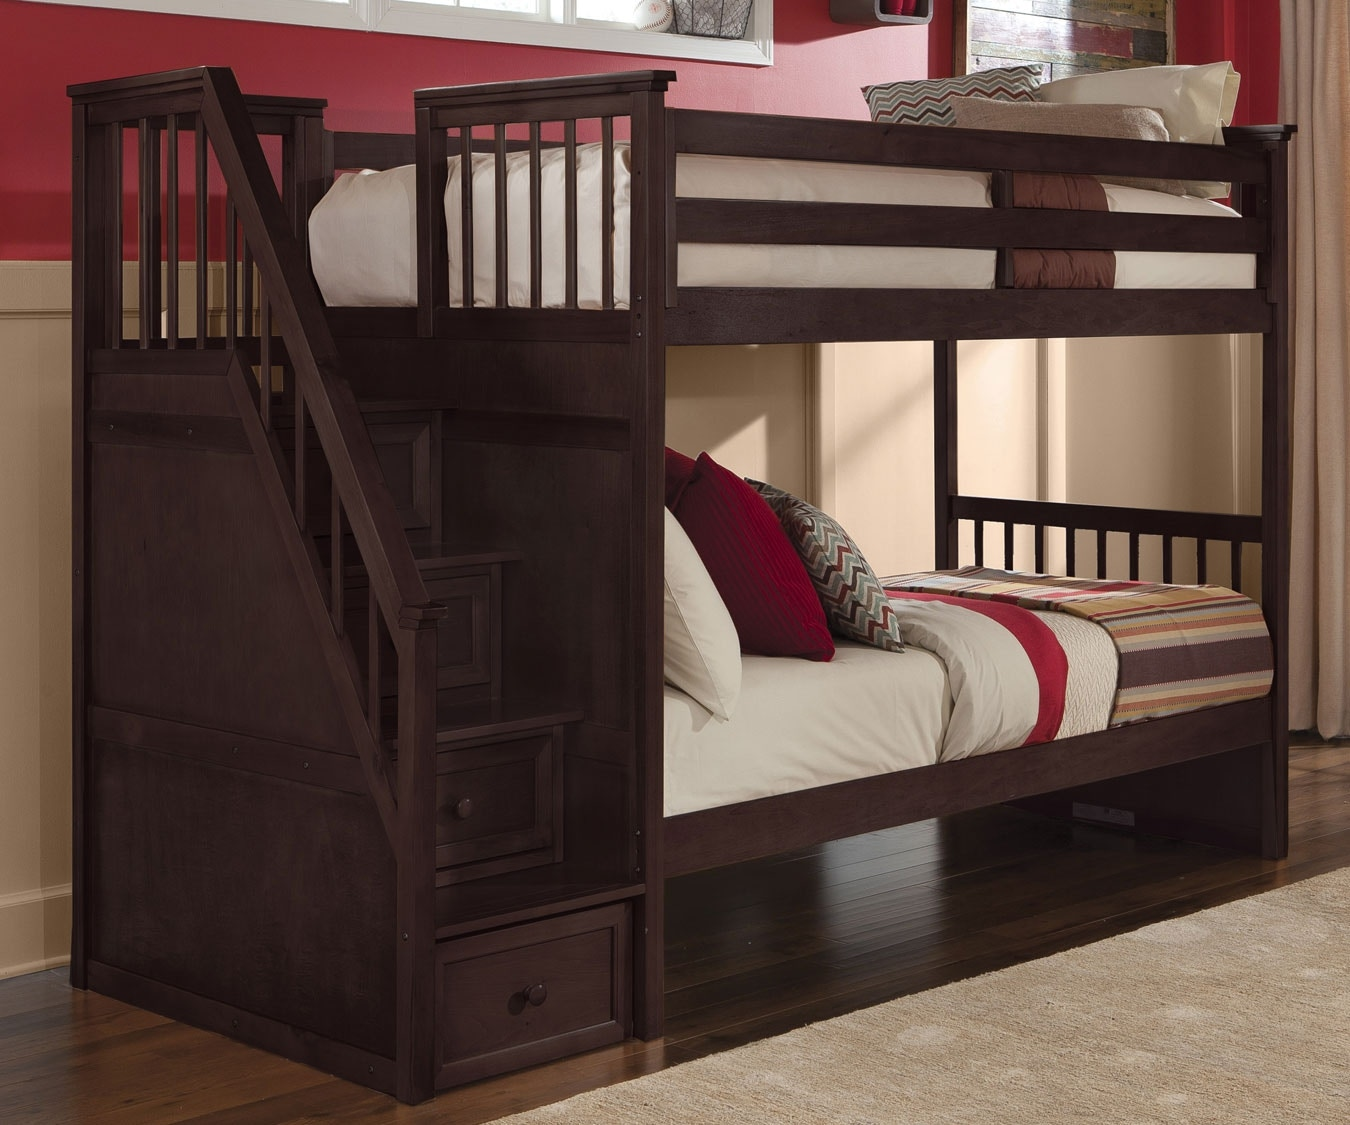 Awesome NE Kids Stair Bunk Bed Twin Over Twin P489739